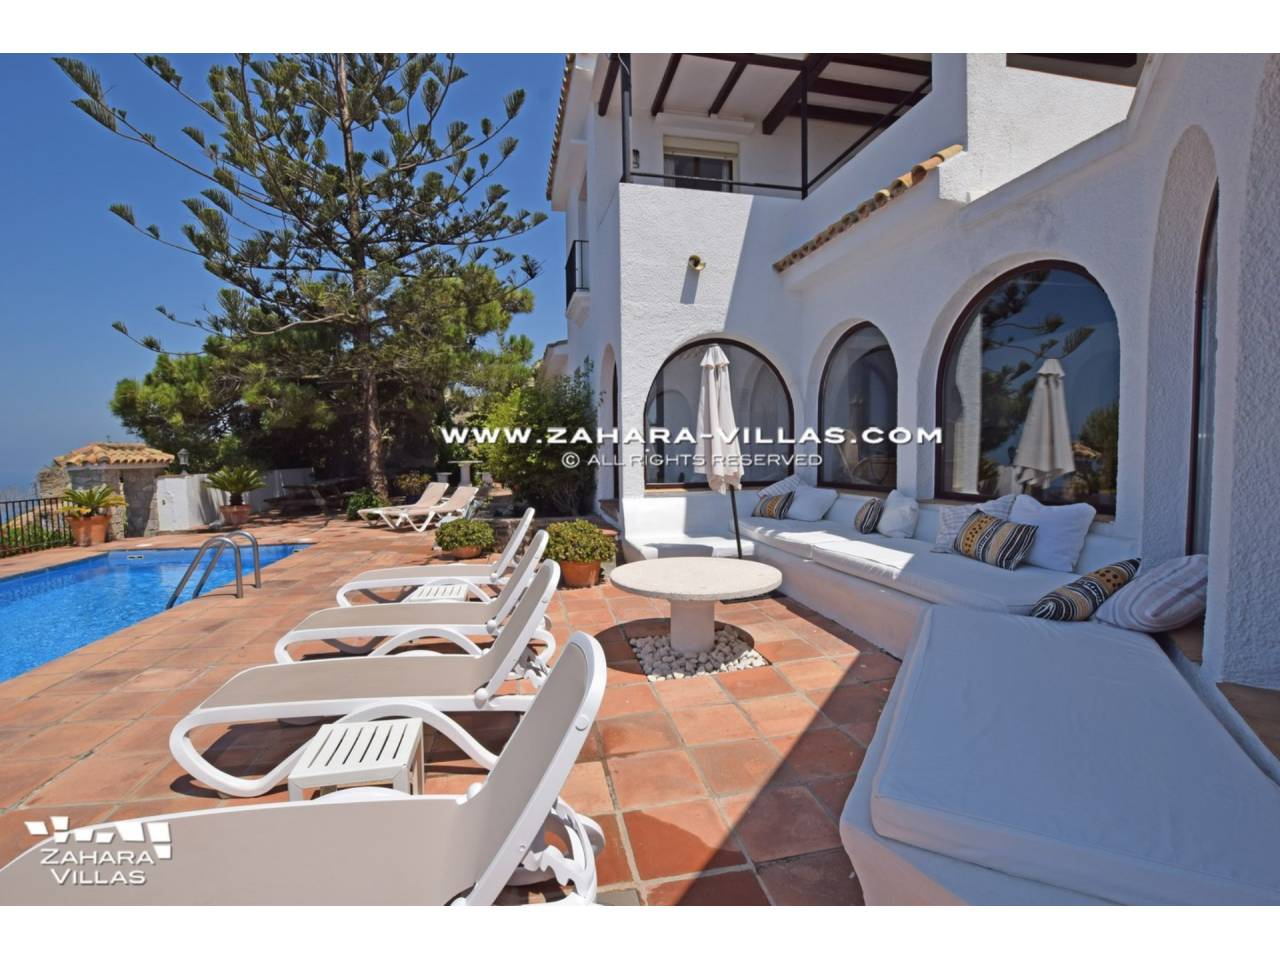 Imagen 3 de Wonderful Villa for sale in Atlanterra-Zahara de los Atunes